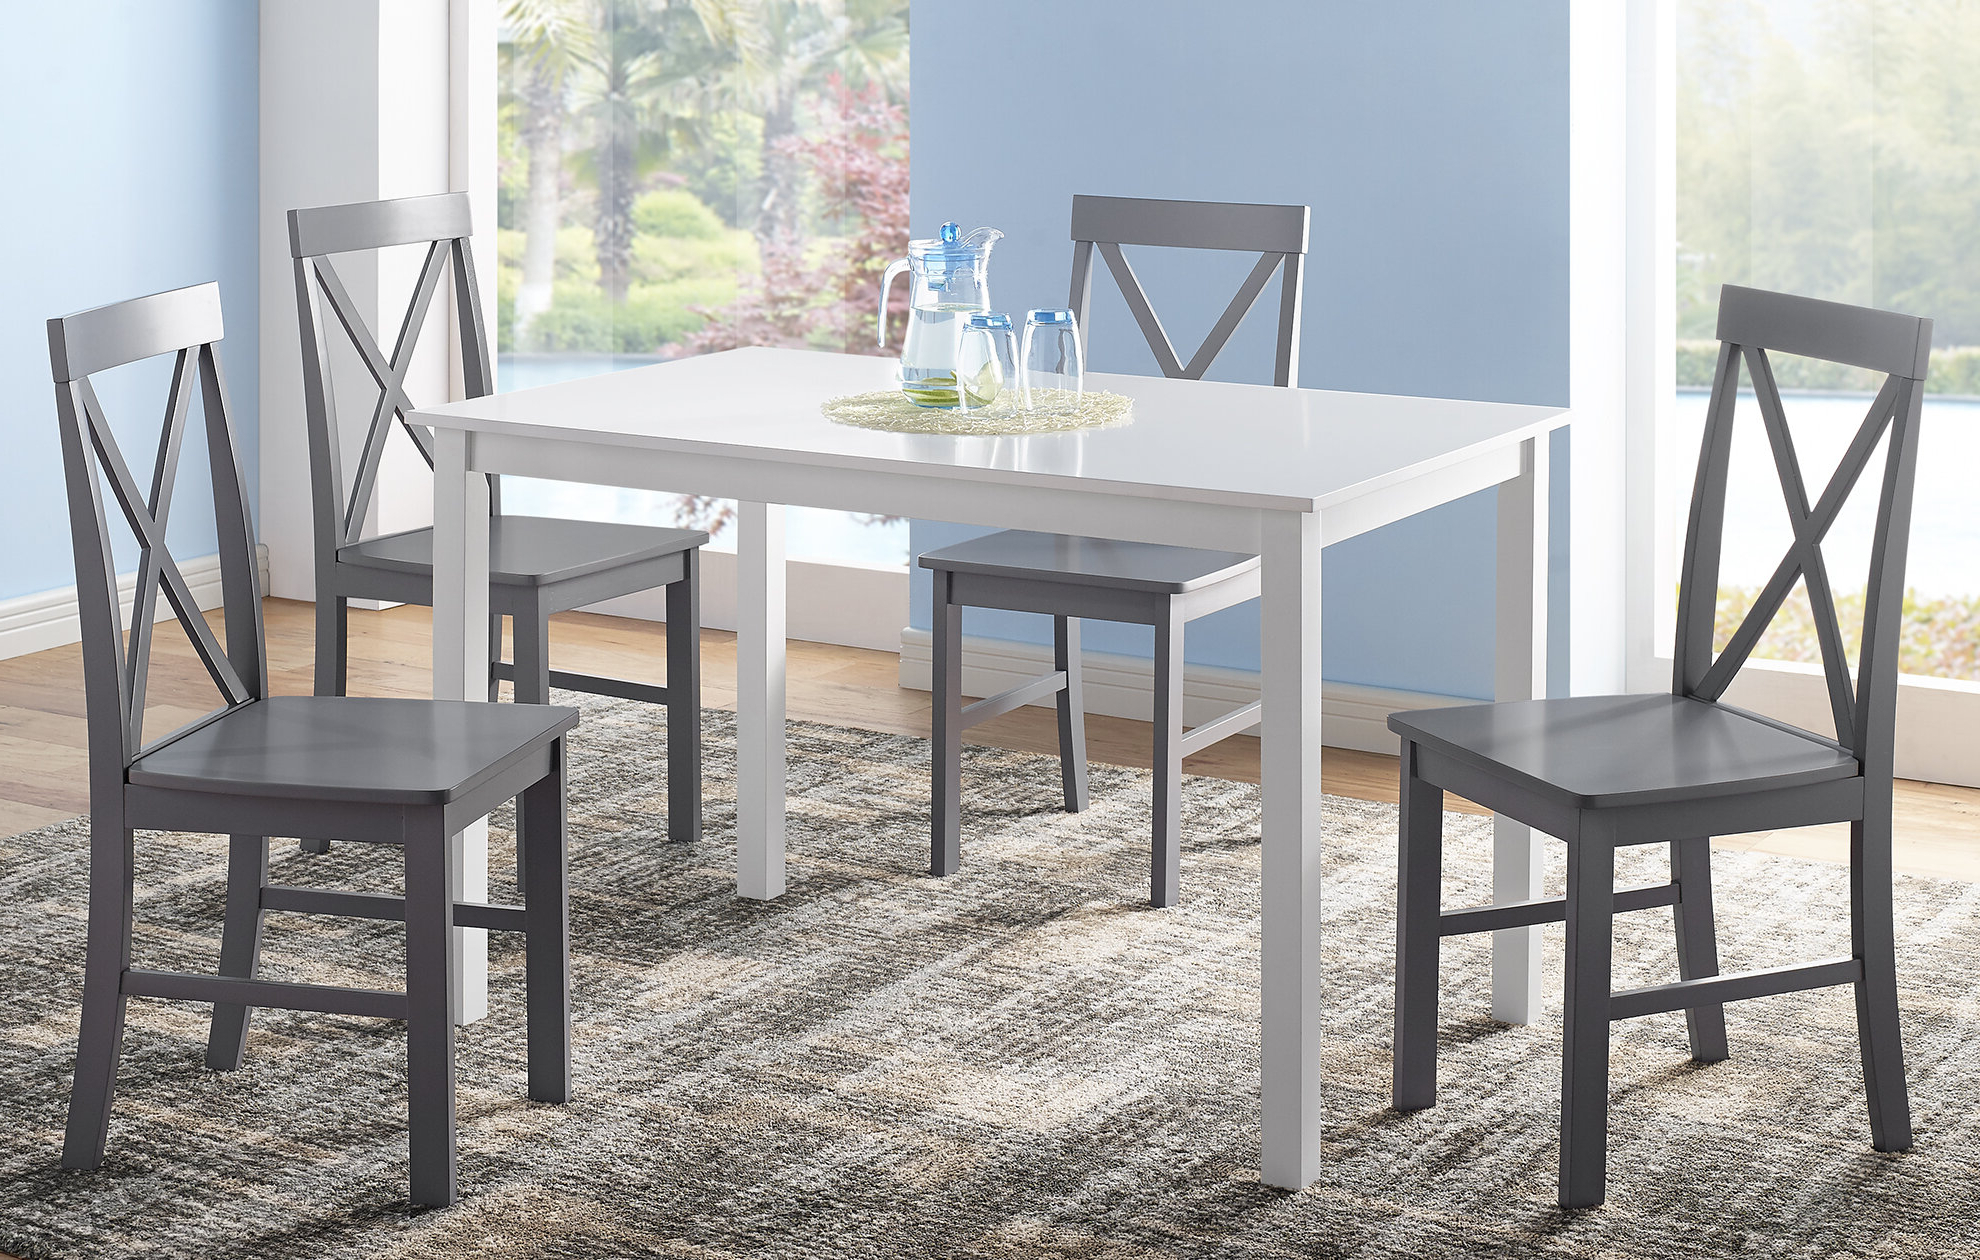 Rarick 5 Piece Solid Wood Dining Sets (Set Of 5) Regarding Newest Rarick 5 Piece Solid Wood Dining Set (Gallery 1 of 20)